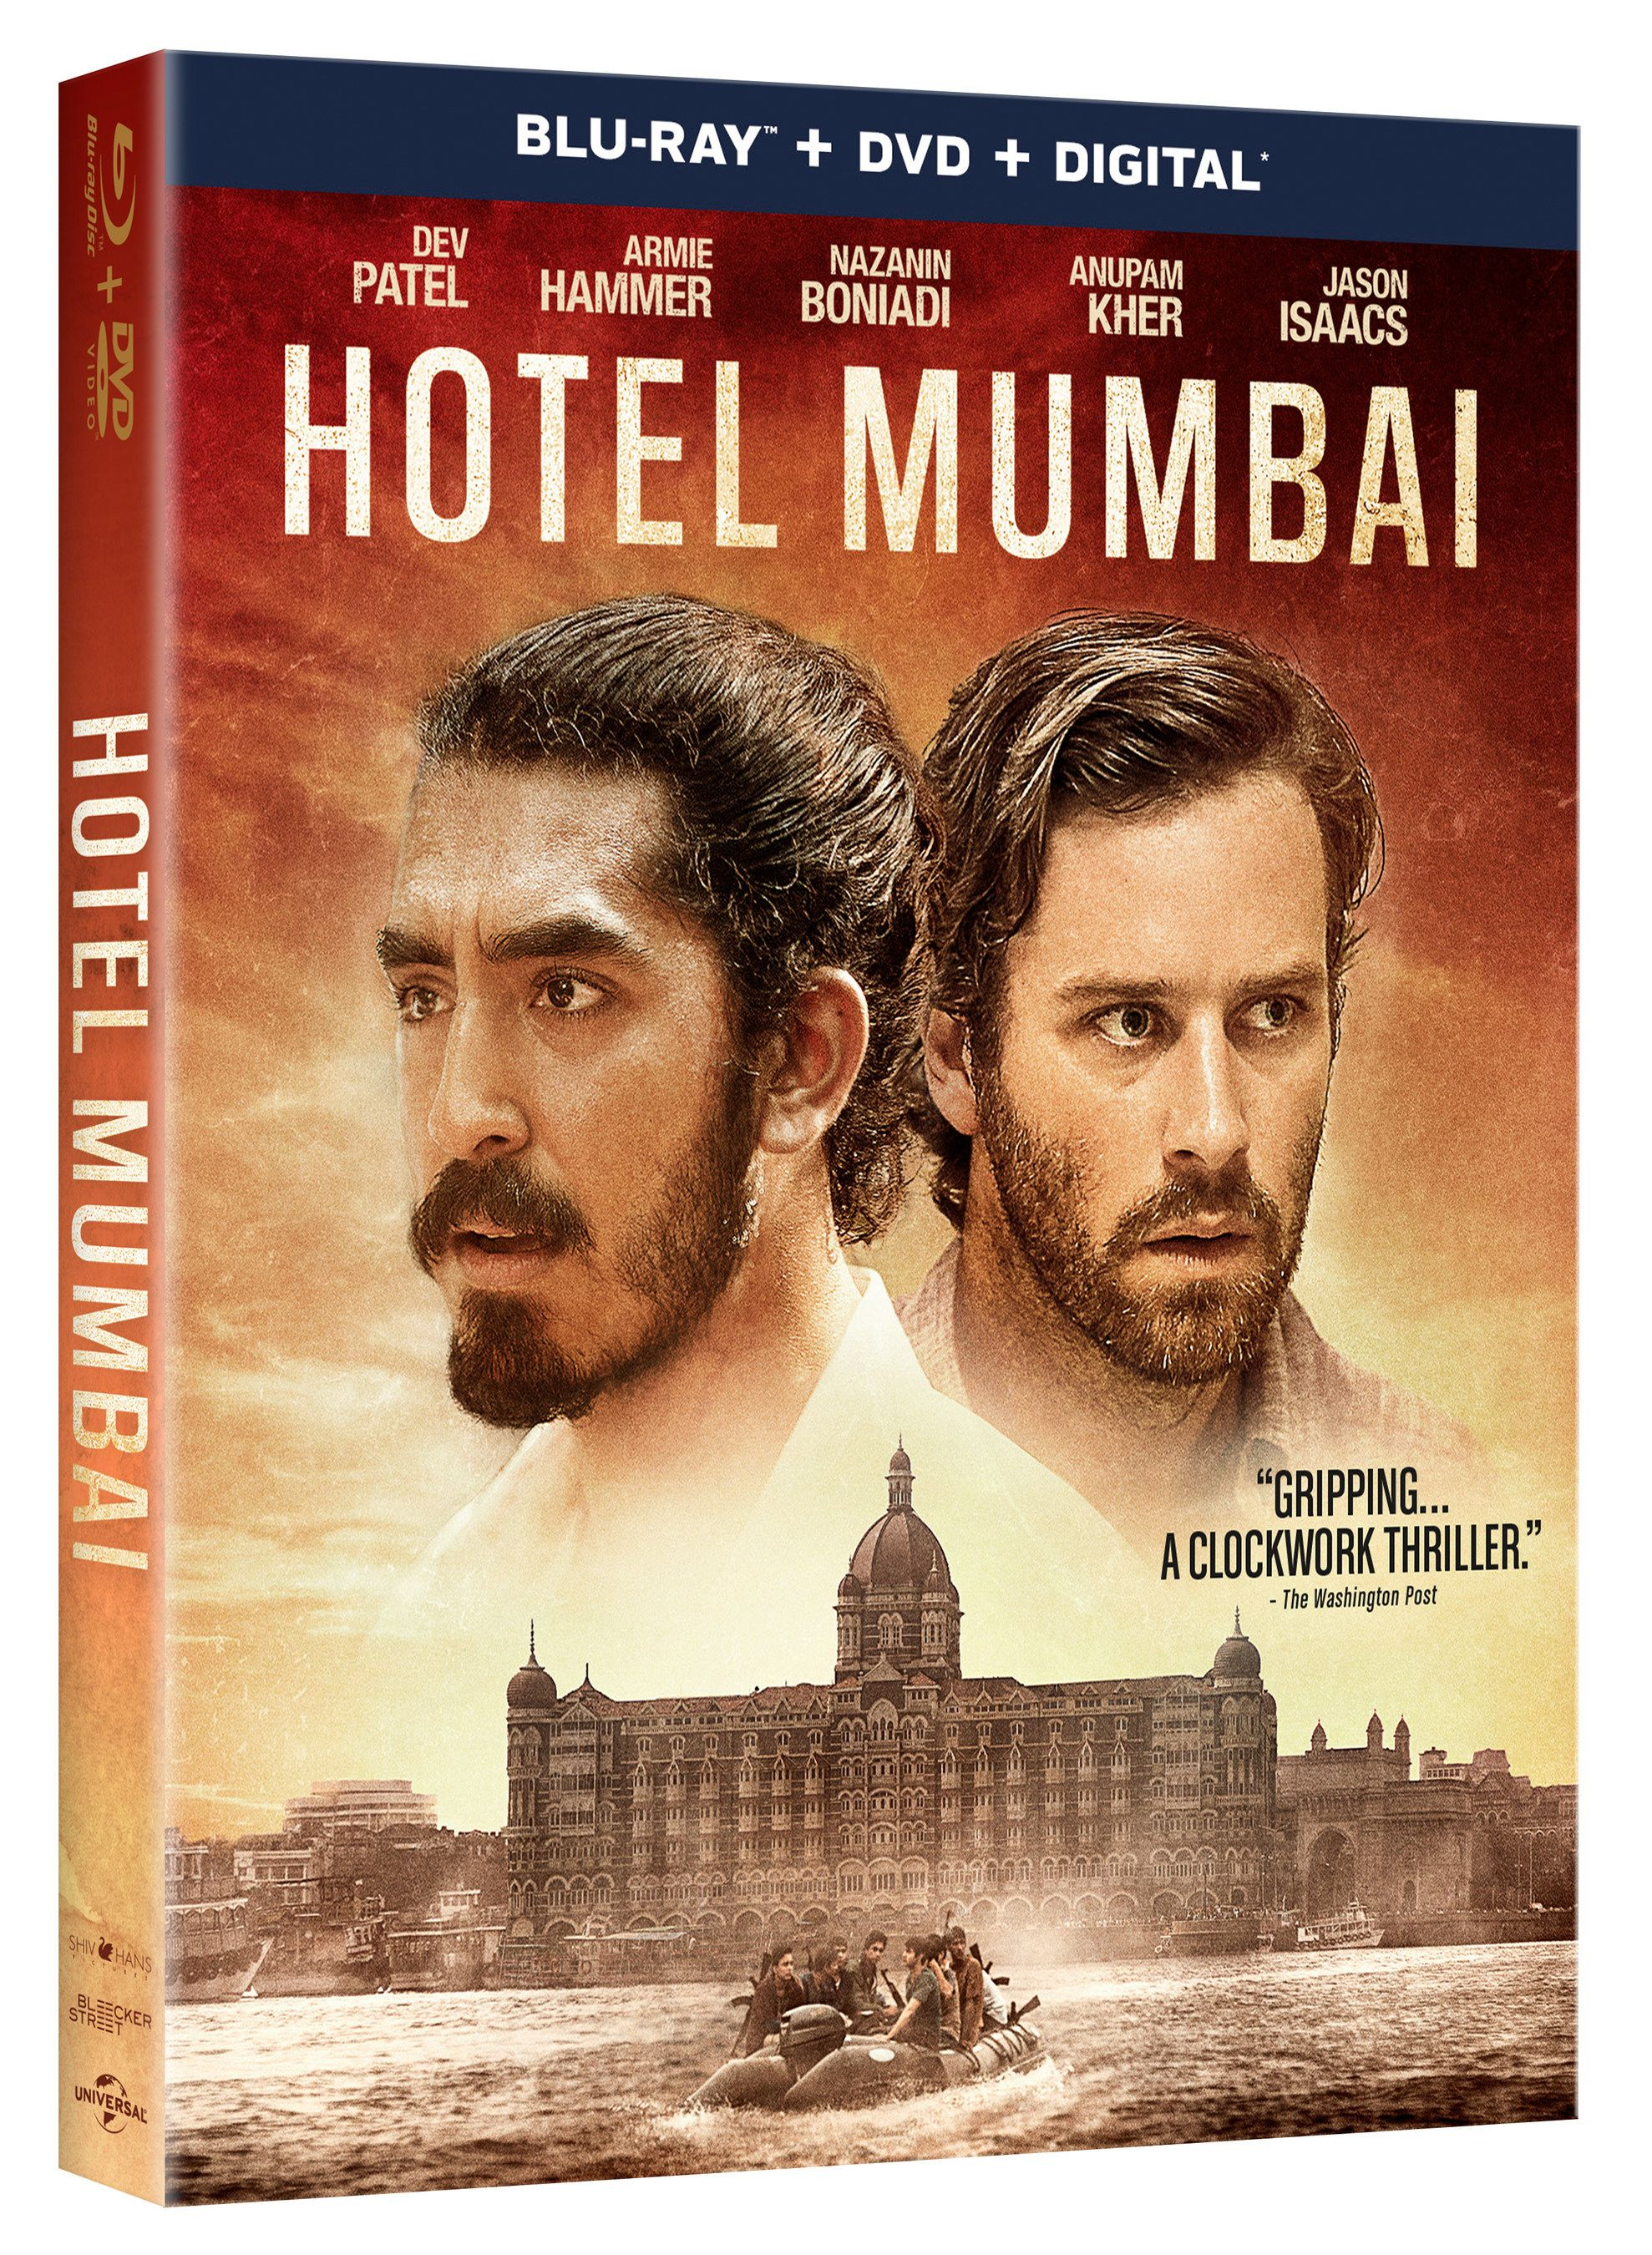 Blu Ray And Dvd Date For Hotel Mumbai 2018 With Images Blu